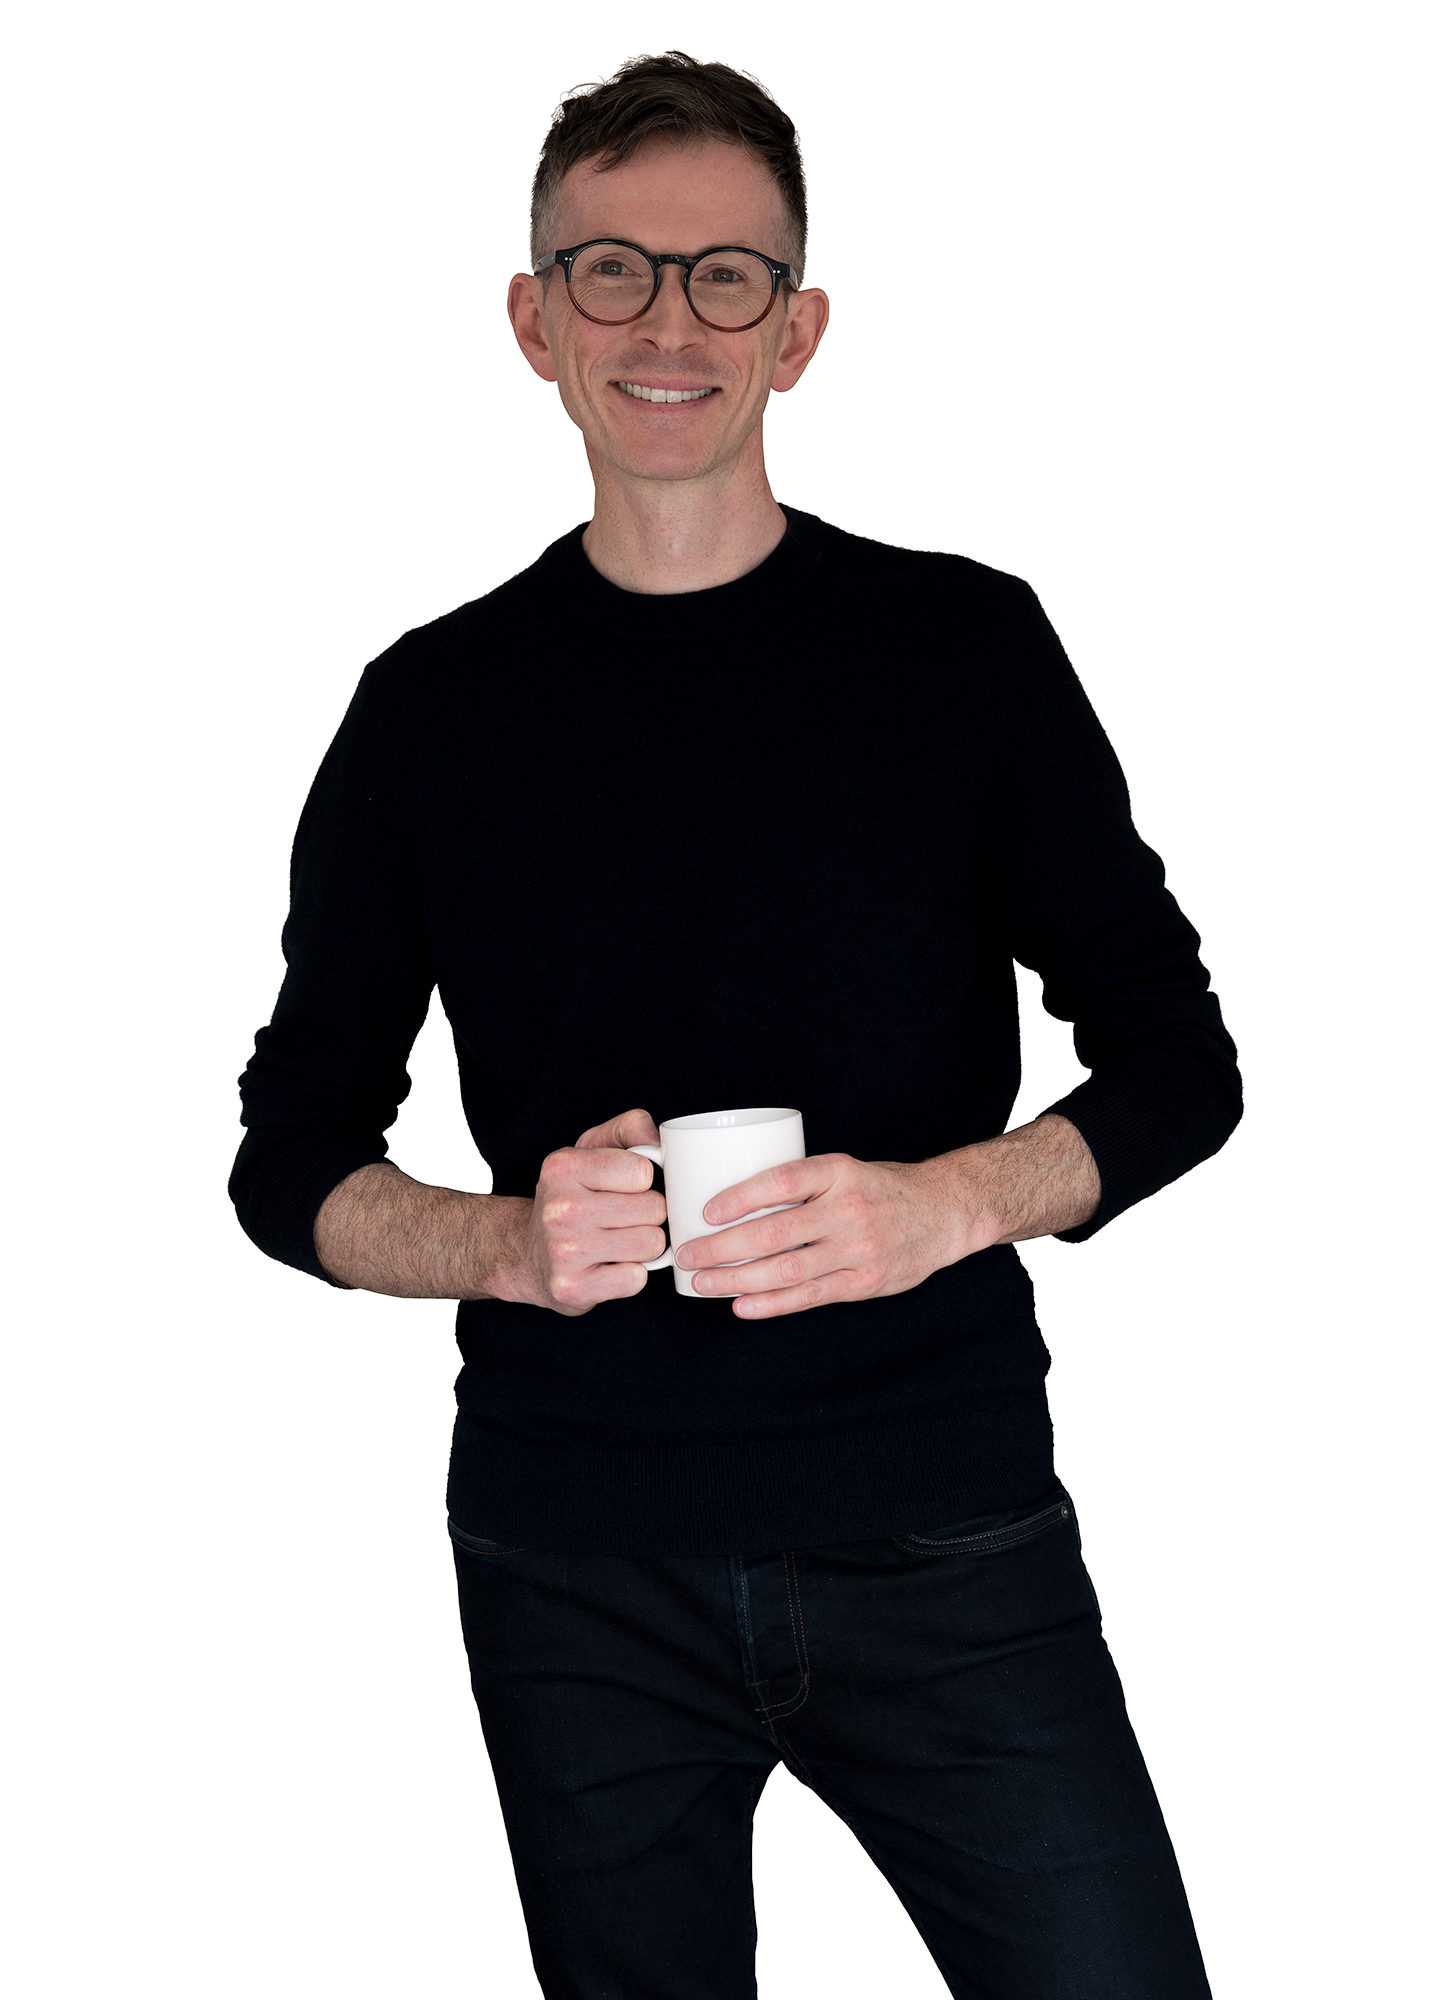 Man stood holding a cup of tea and smiling.